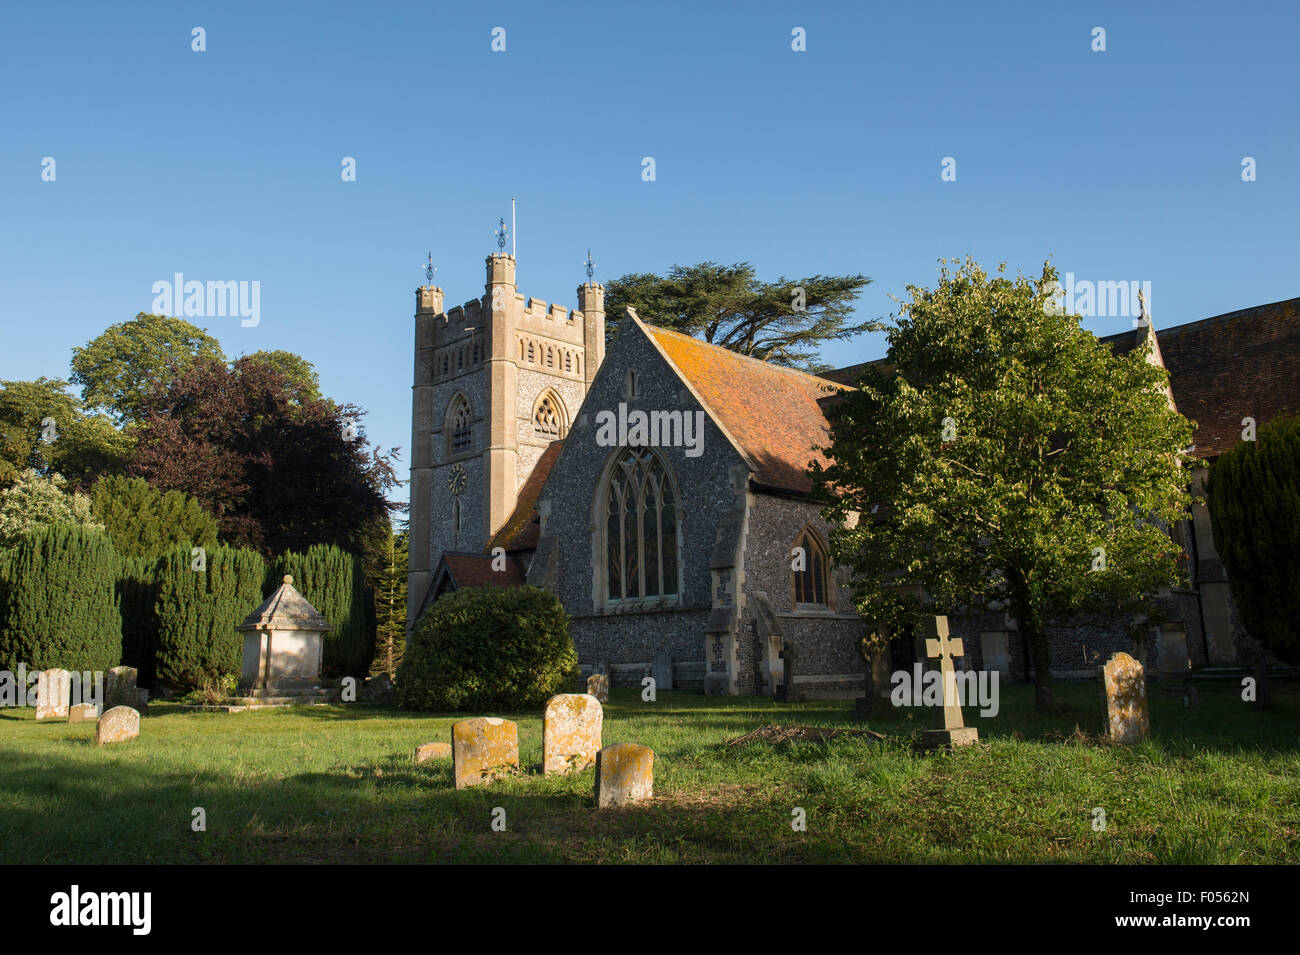 St Marys church, Hambleden, Buckinghamshire, England - Stock Image